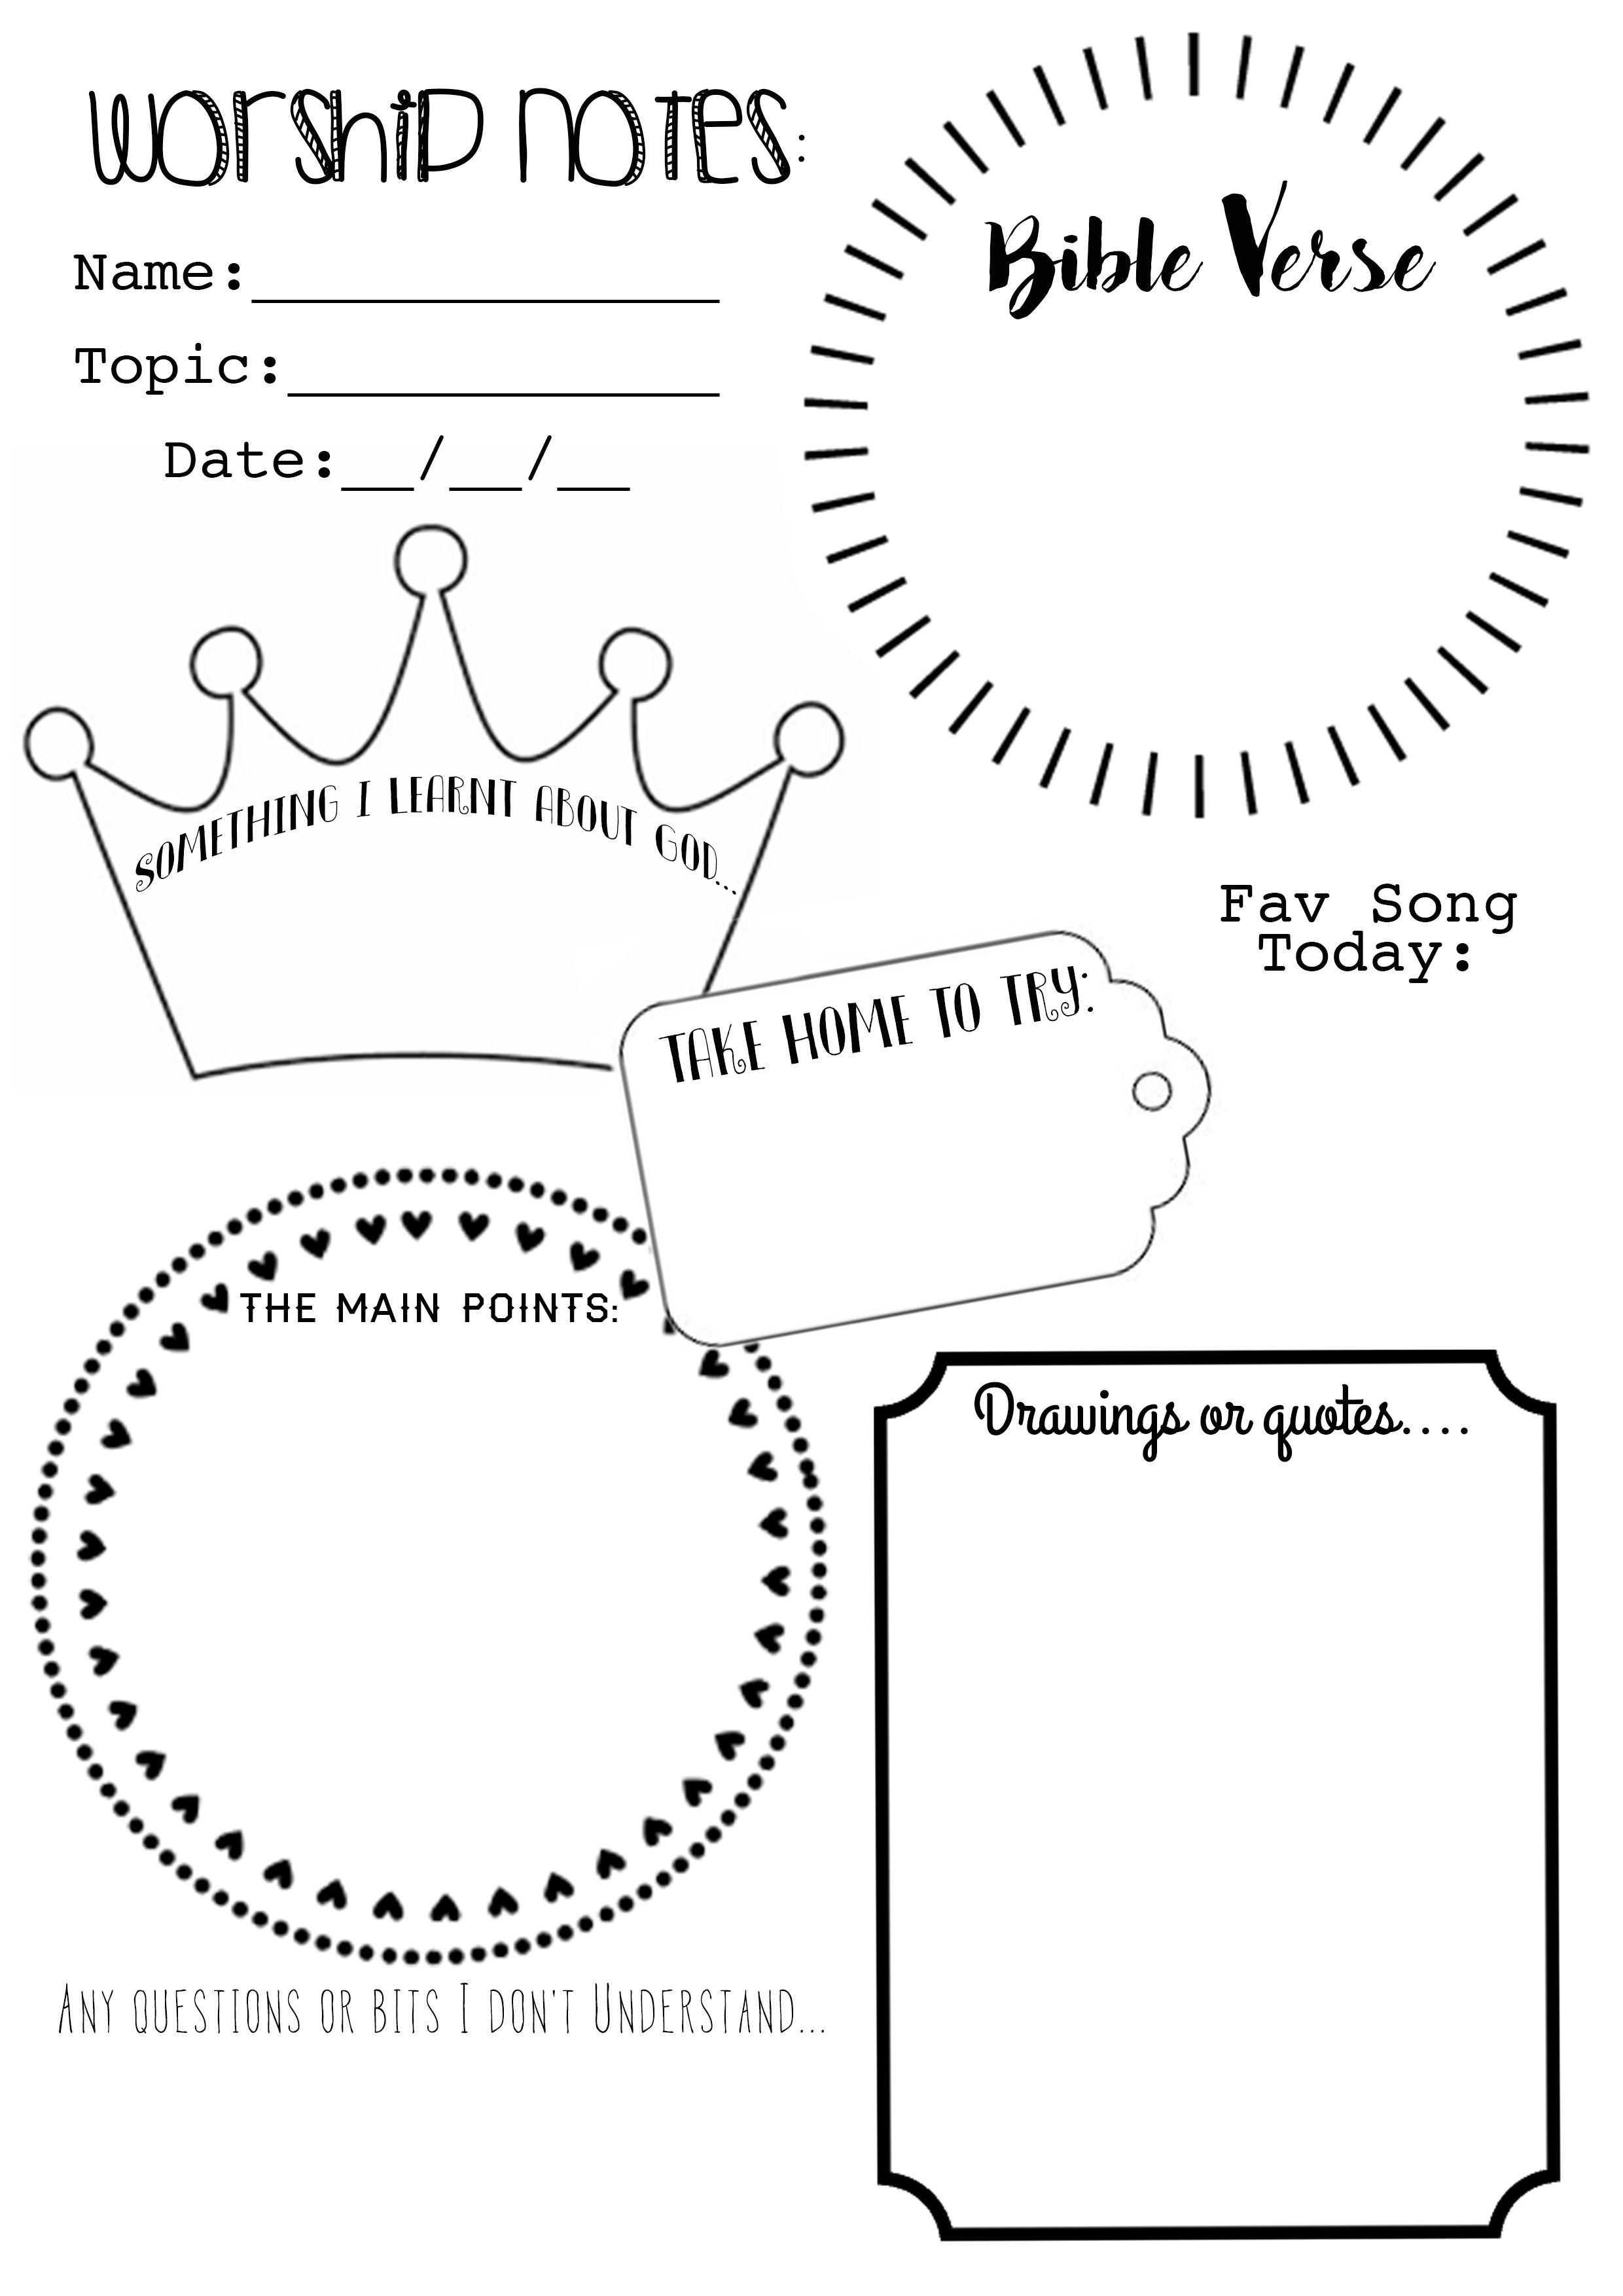 I've Made Up A Worship Notes/ Sermon Notes Free Printable For The - Free Printable Sunday School Lessons For Teens